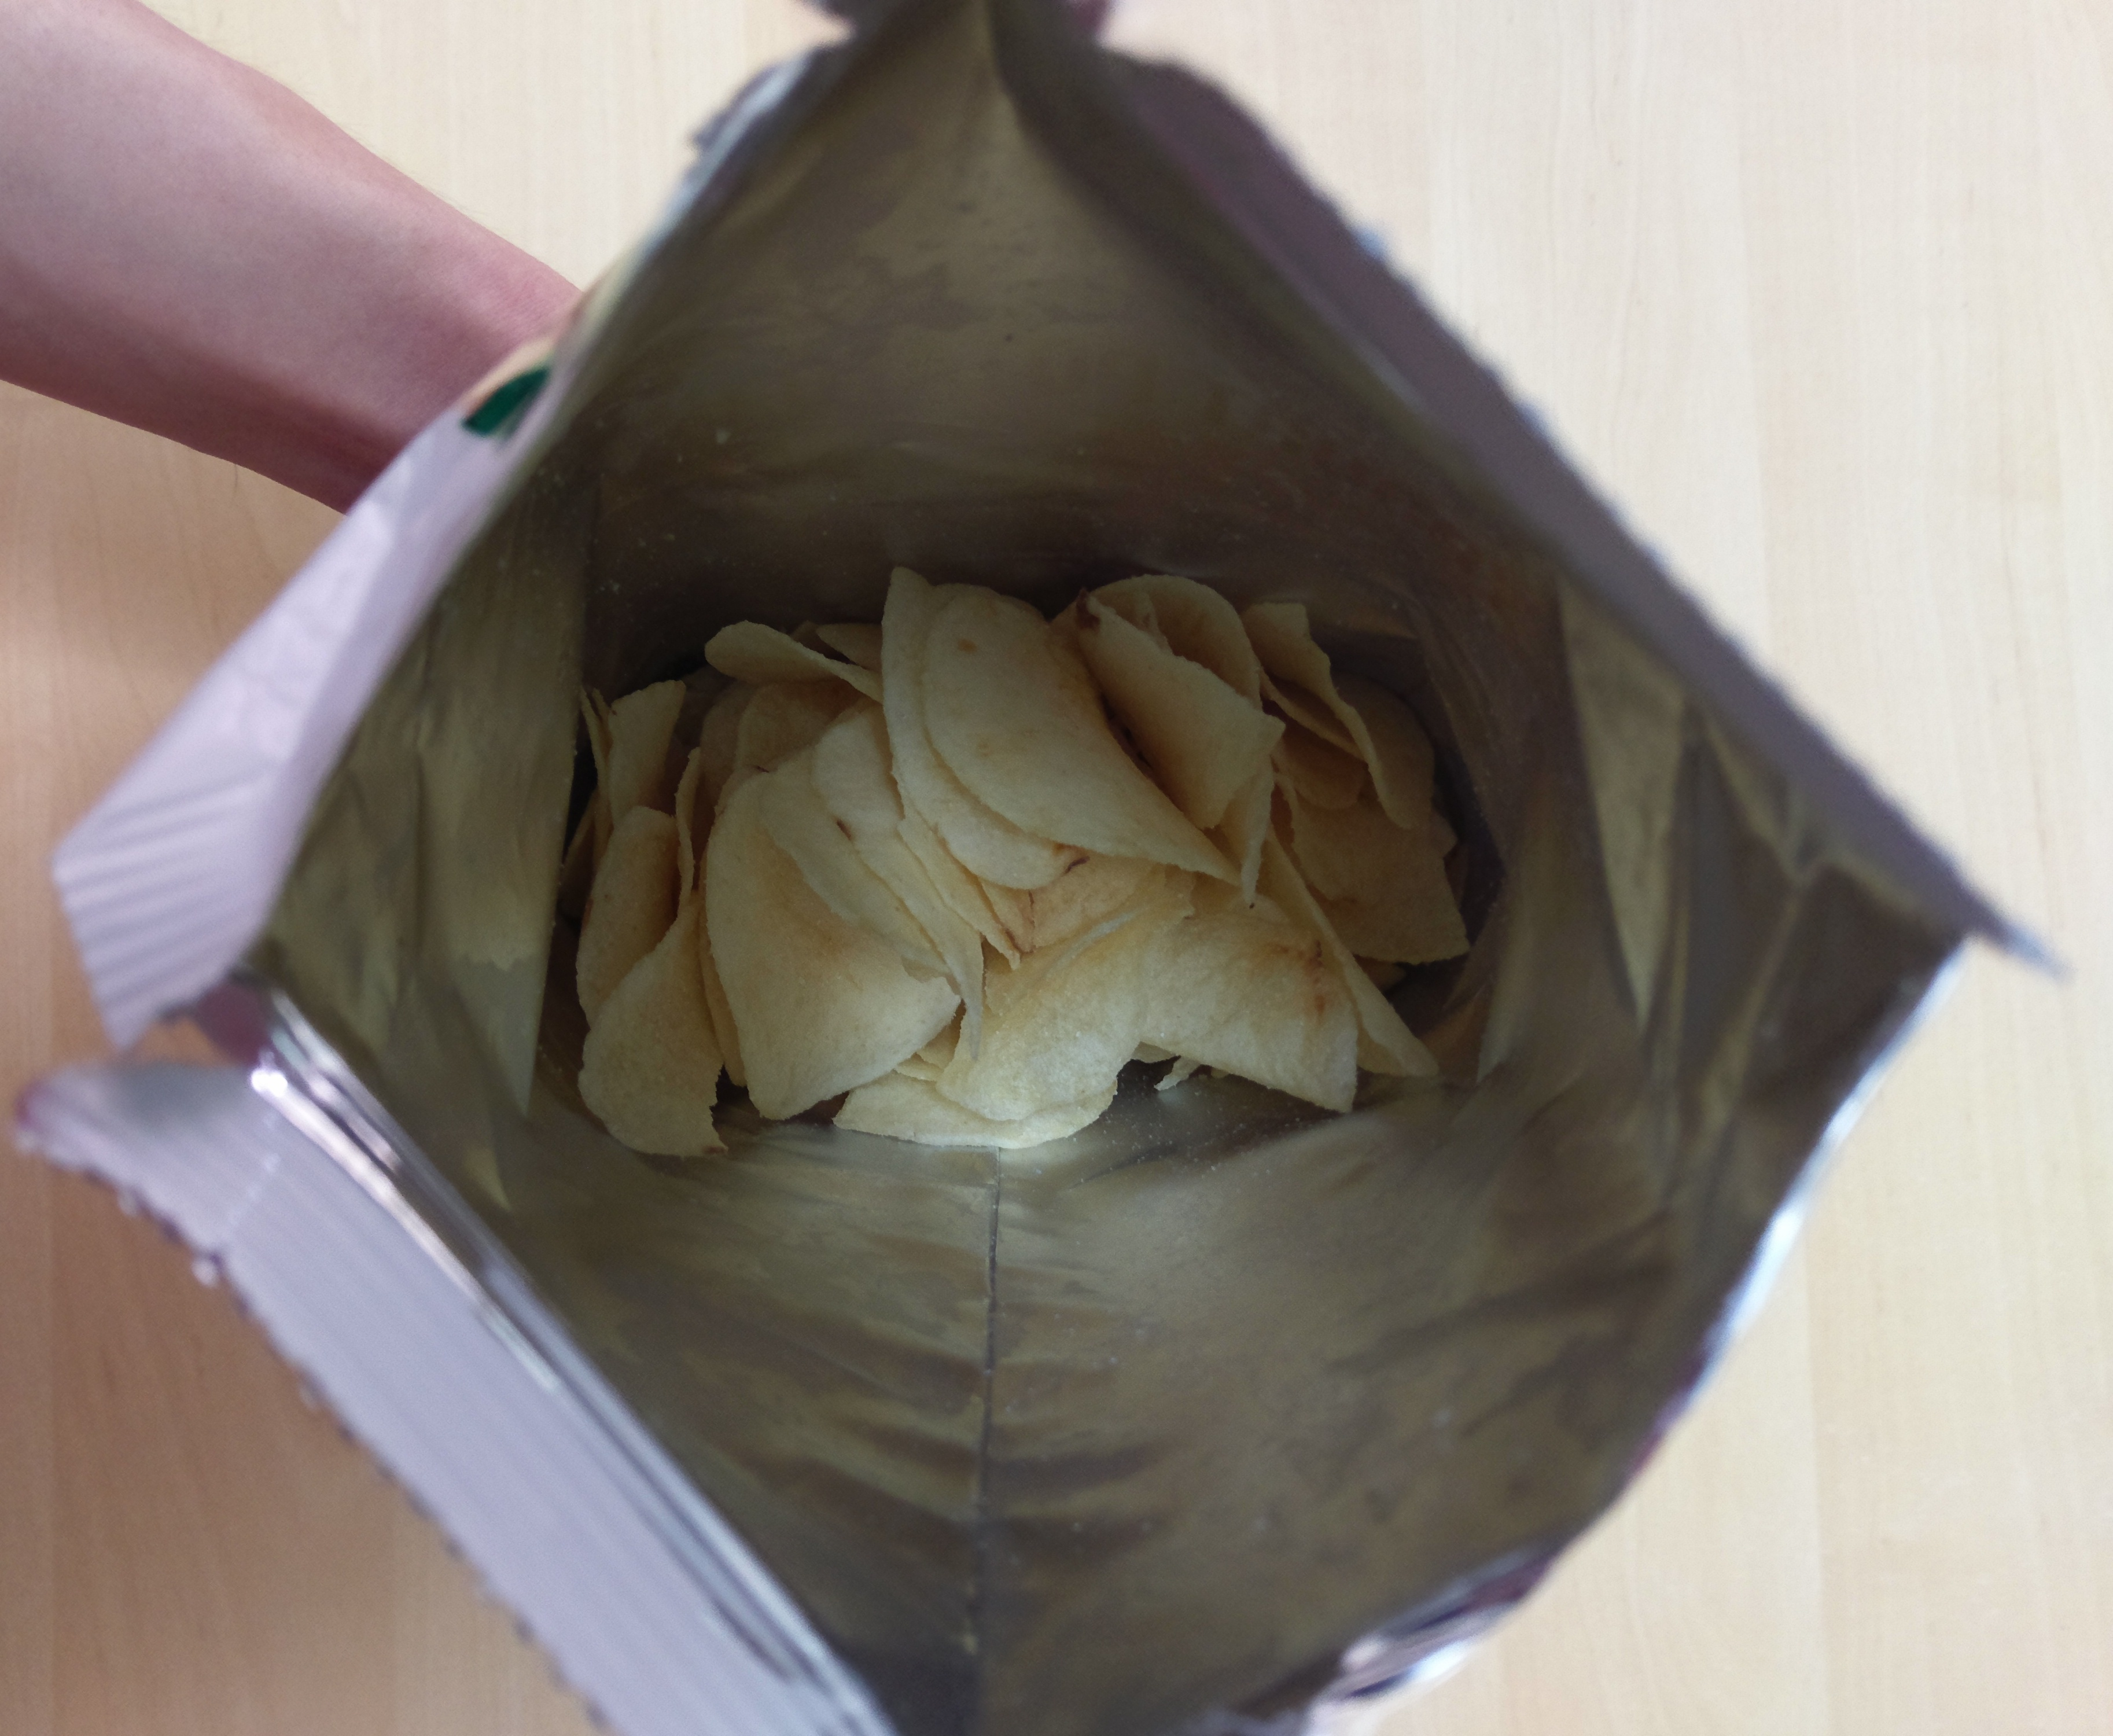 Inside the cosmos yogurt potato chip bag